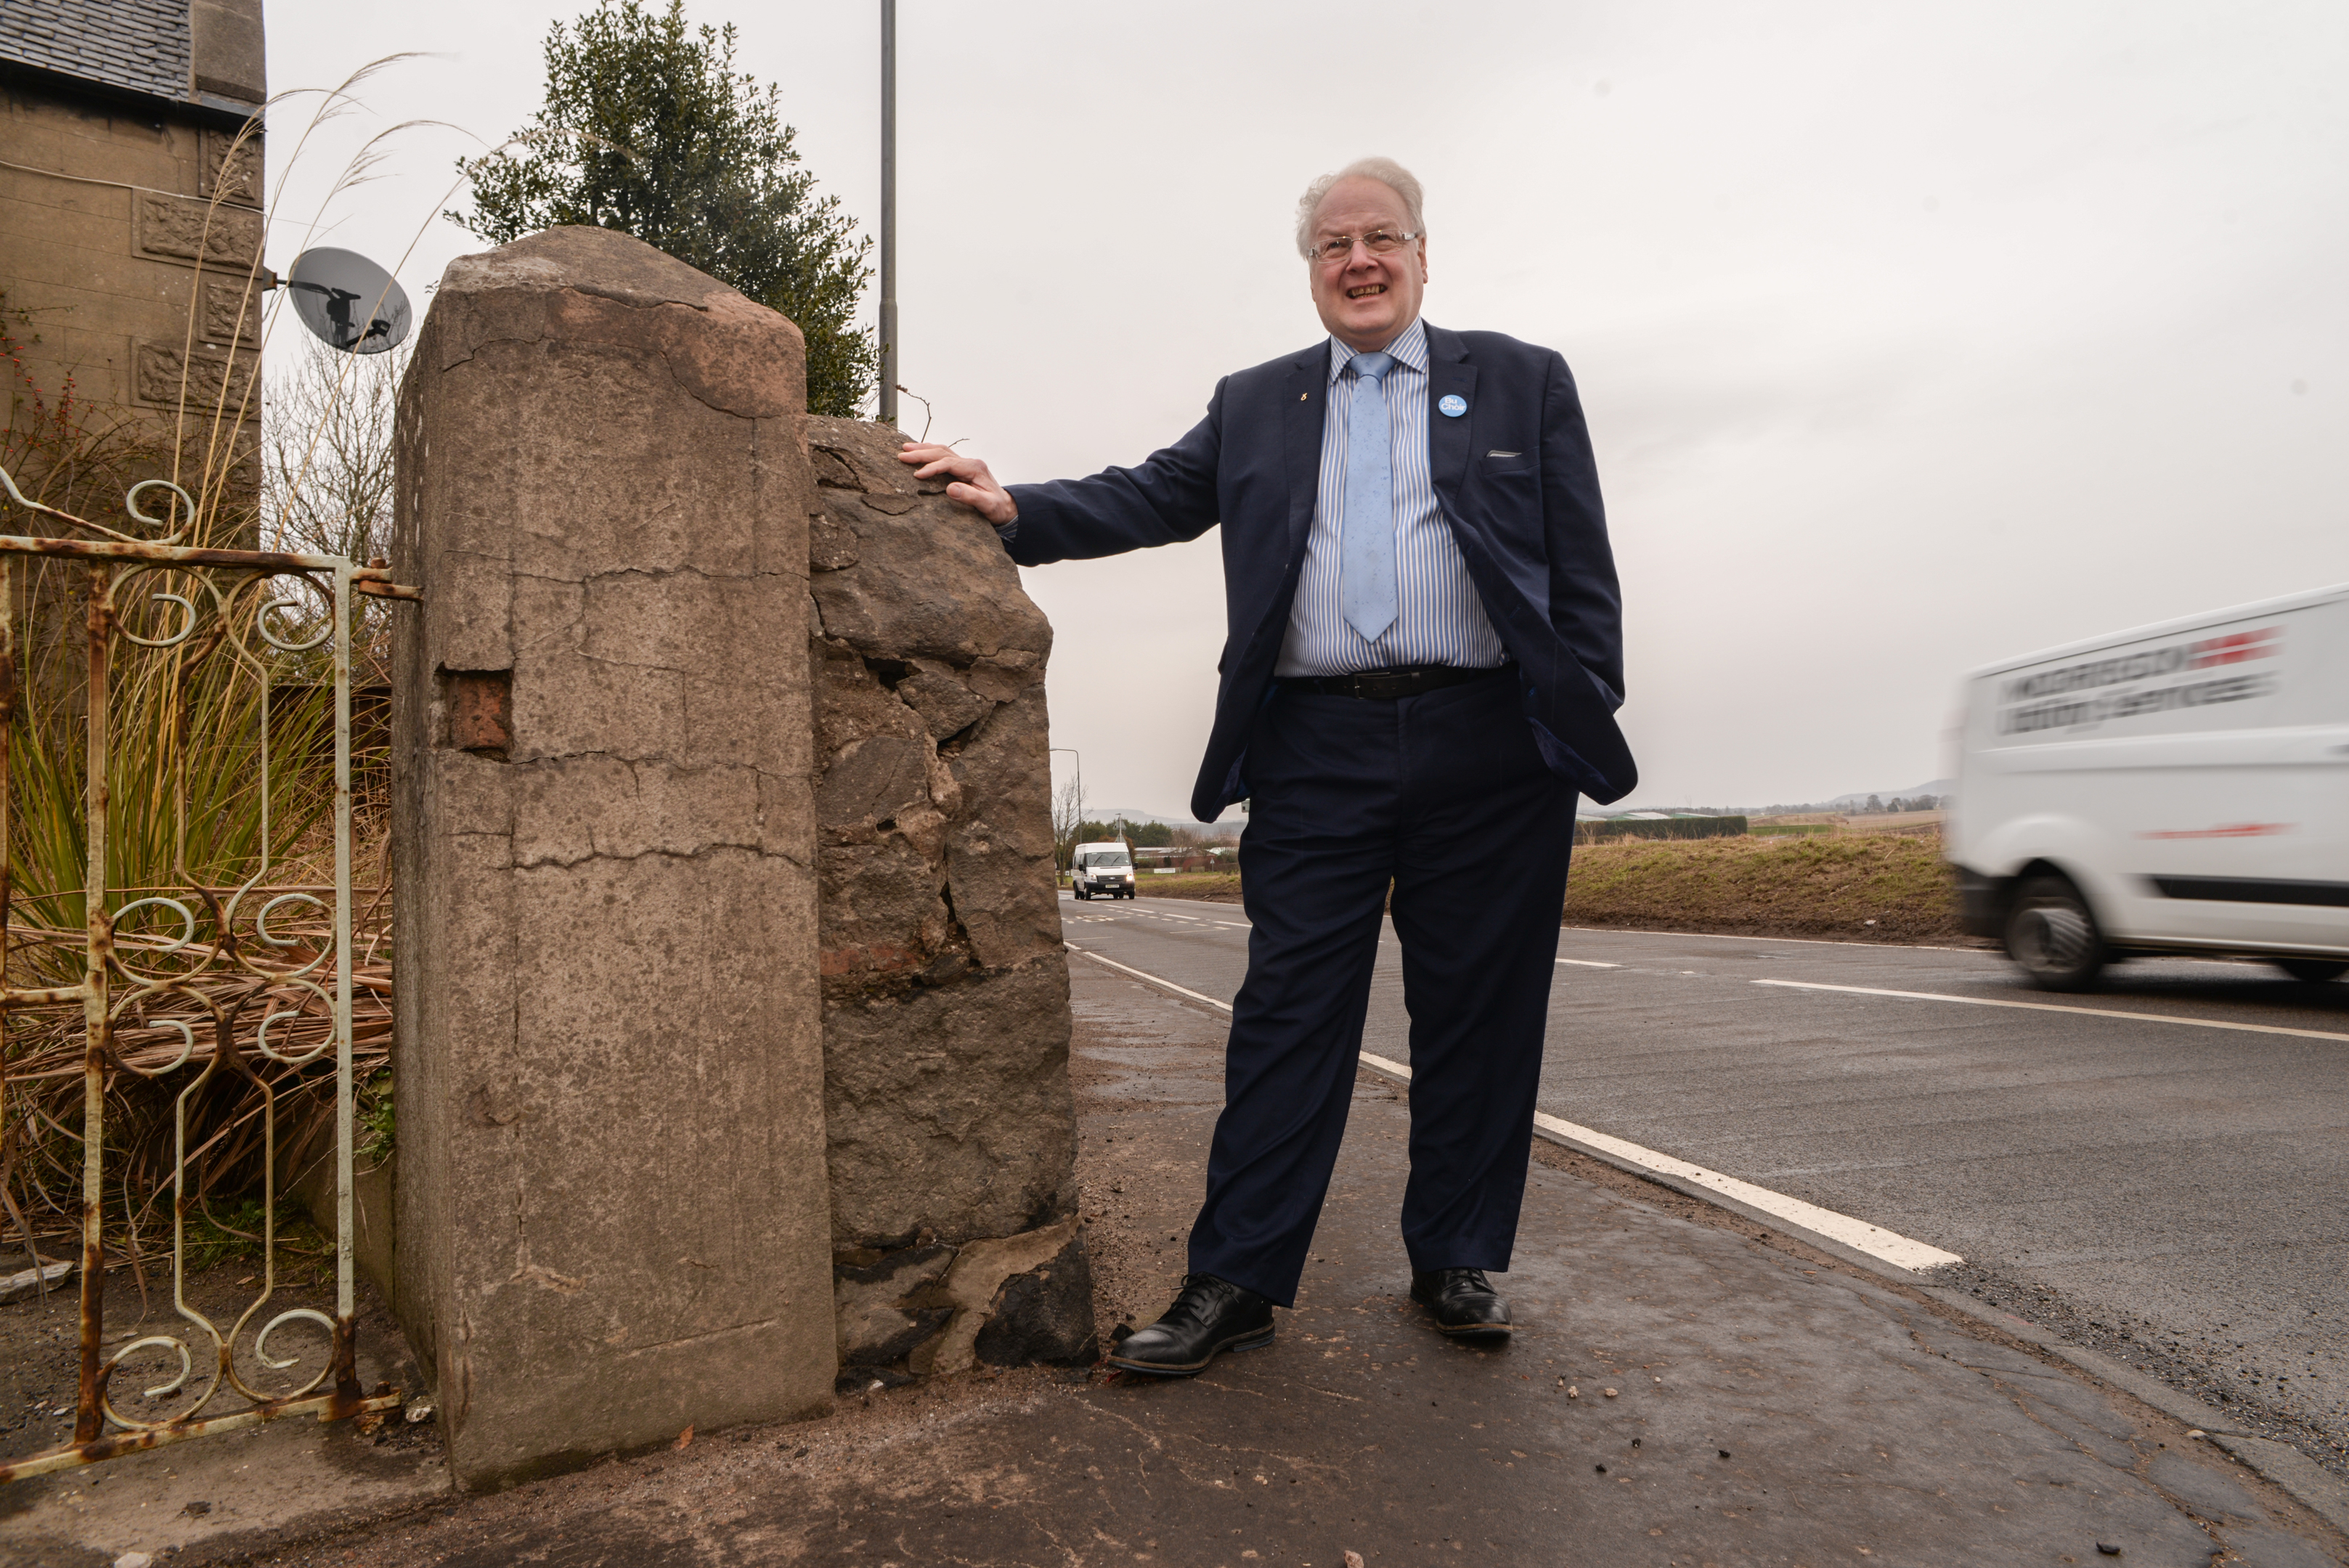 David MacDiarmid stands by the wall which will be re-modeled to allow motorists better visibility at the crosskeys junction, Freuchie.